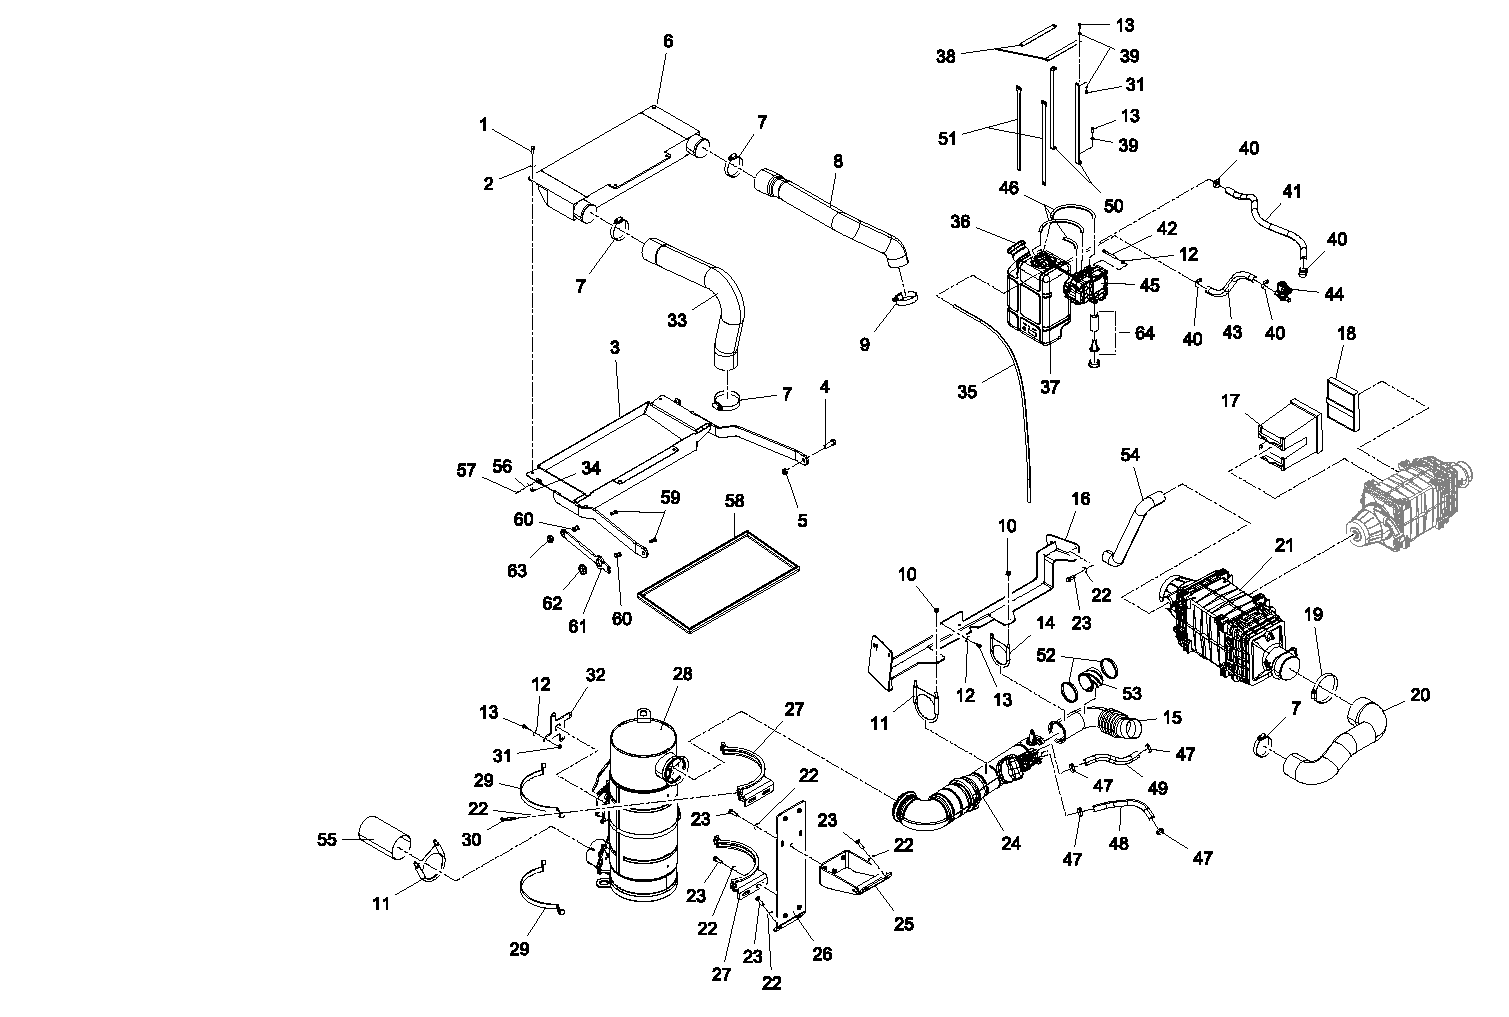 ASV RT120 Forestry OEM Parts Diagrams